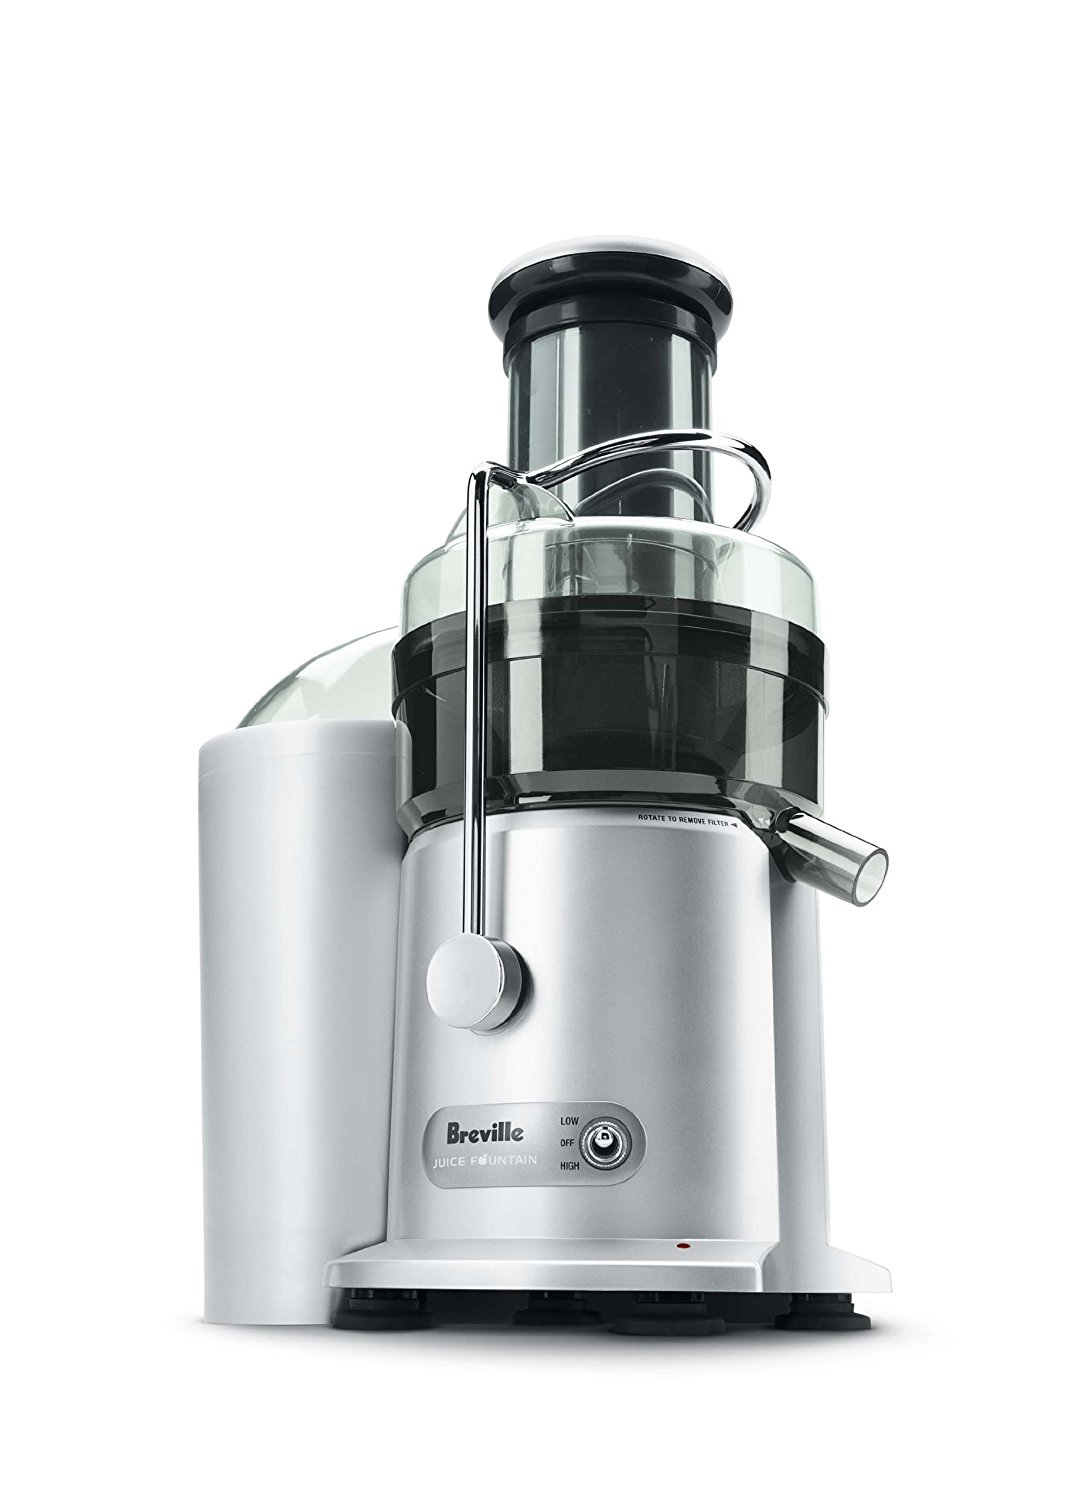 Revile is probably the most popular centrifugal juicer, click image for more info.